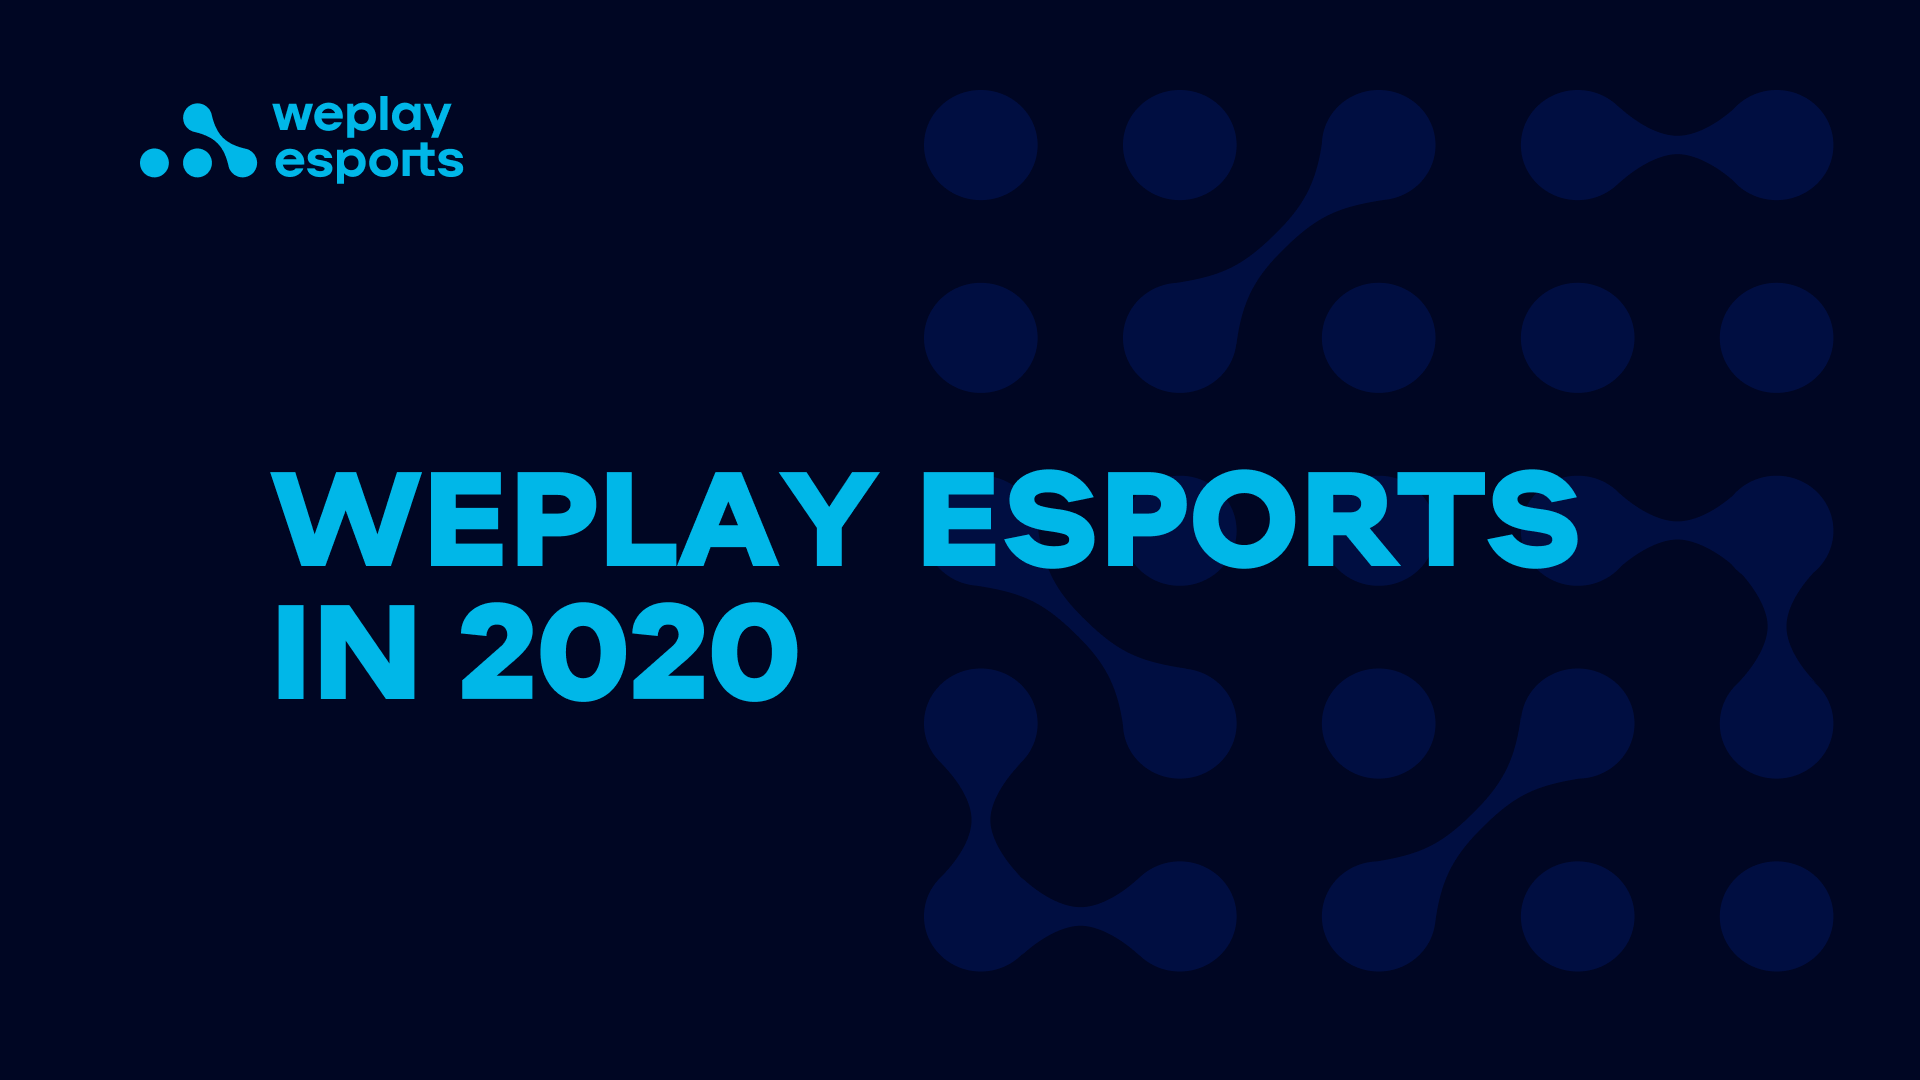 The Year in Review: How WePlay Esports Spent 2020